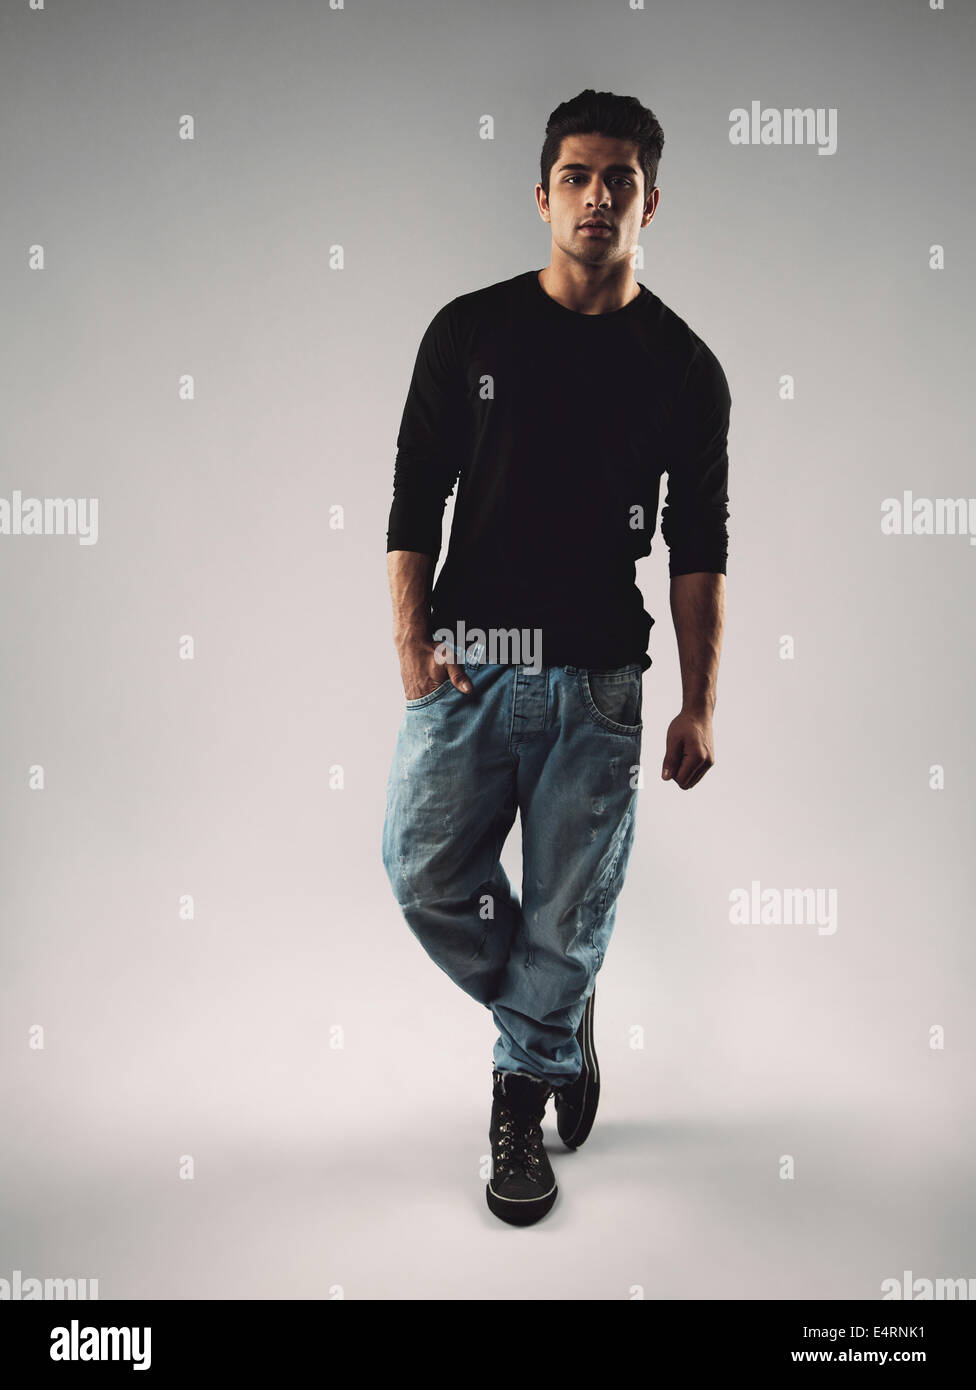 Full length portrait of stylish young man in casuals looking at camera. Hispanic male model posing on grey background. - Stock Image